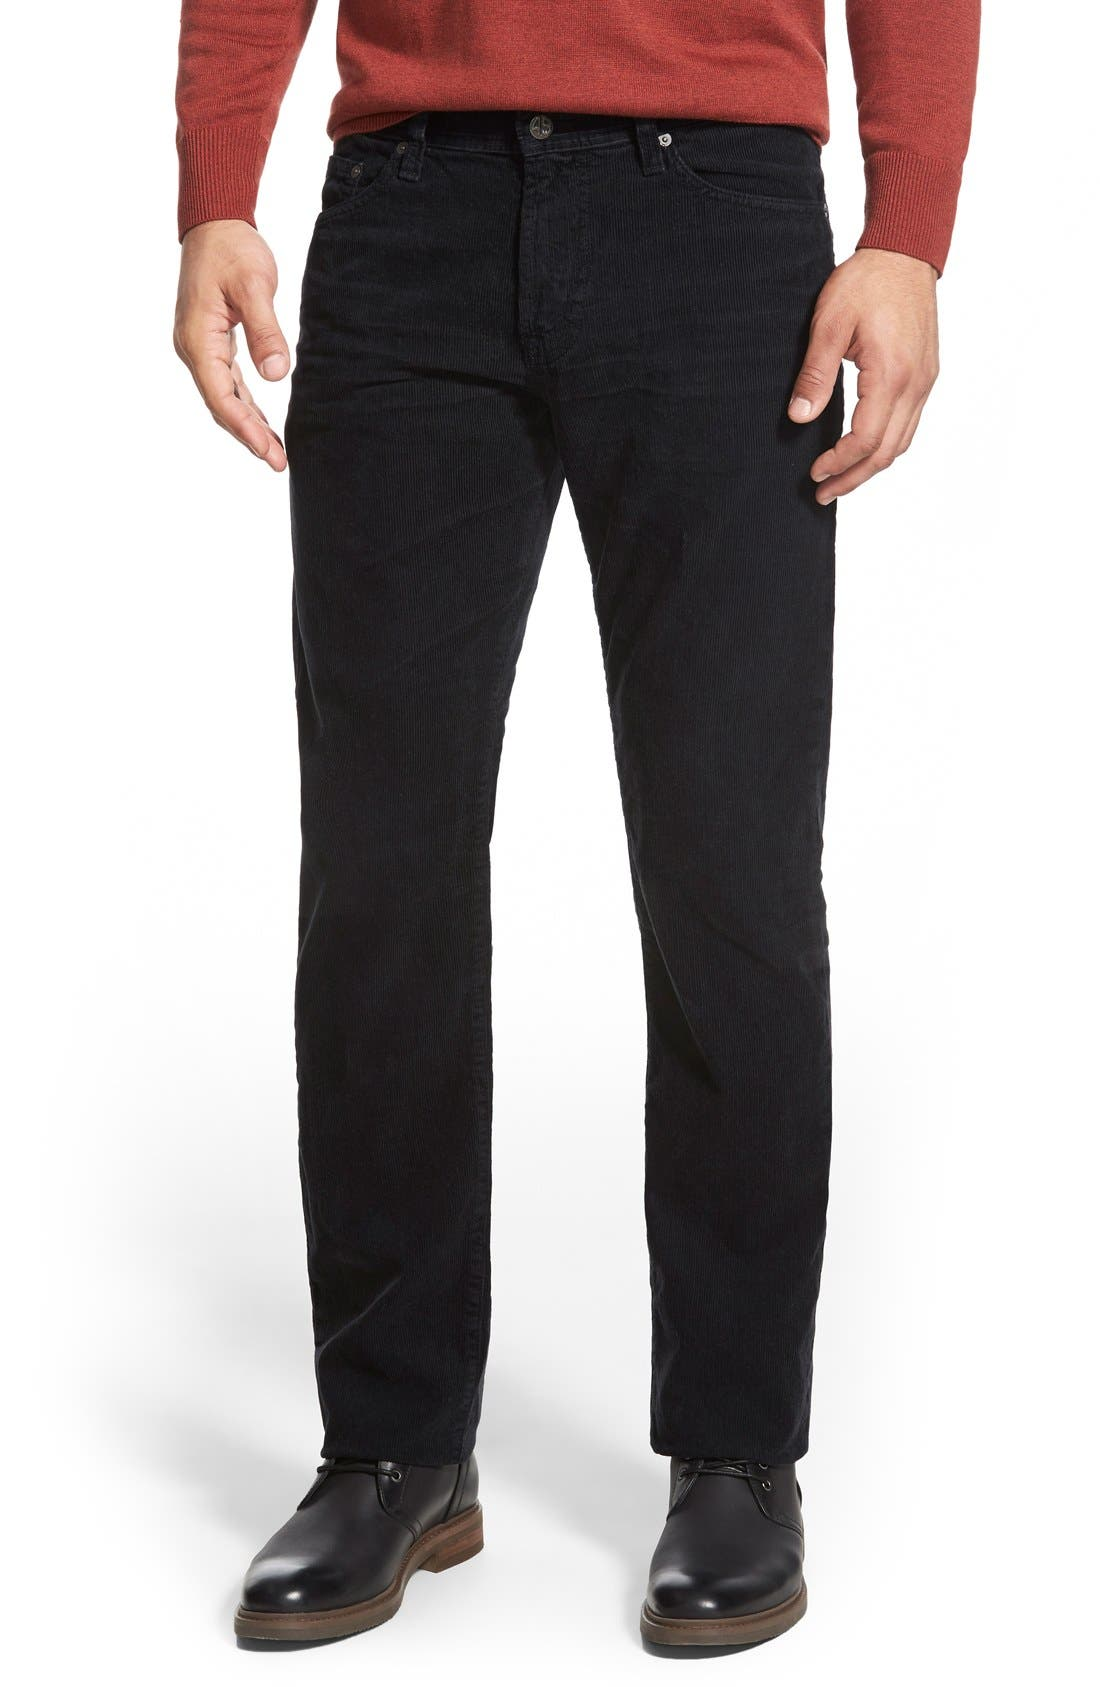 'Graduate' Tailored Straight Leg Corduroy Pants,                             Main thumbnail 4, color,